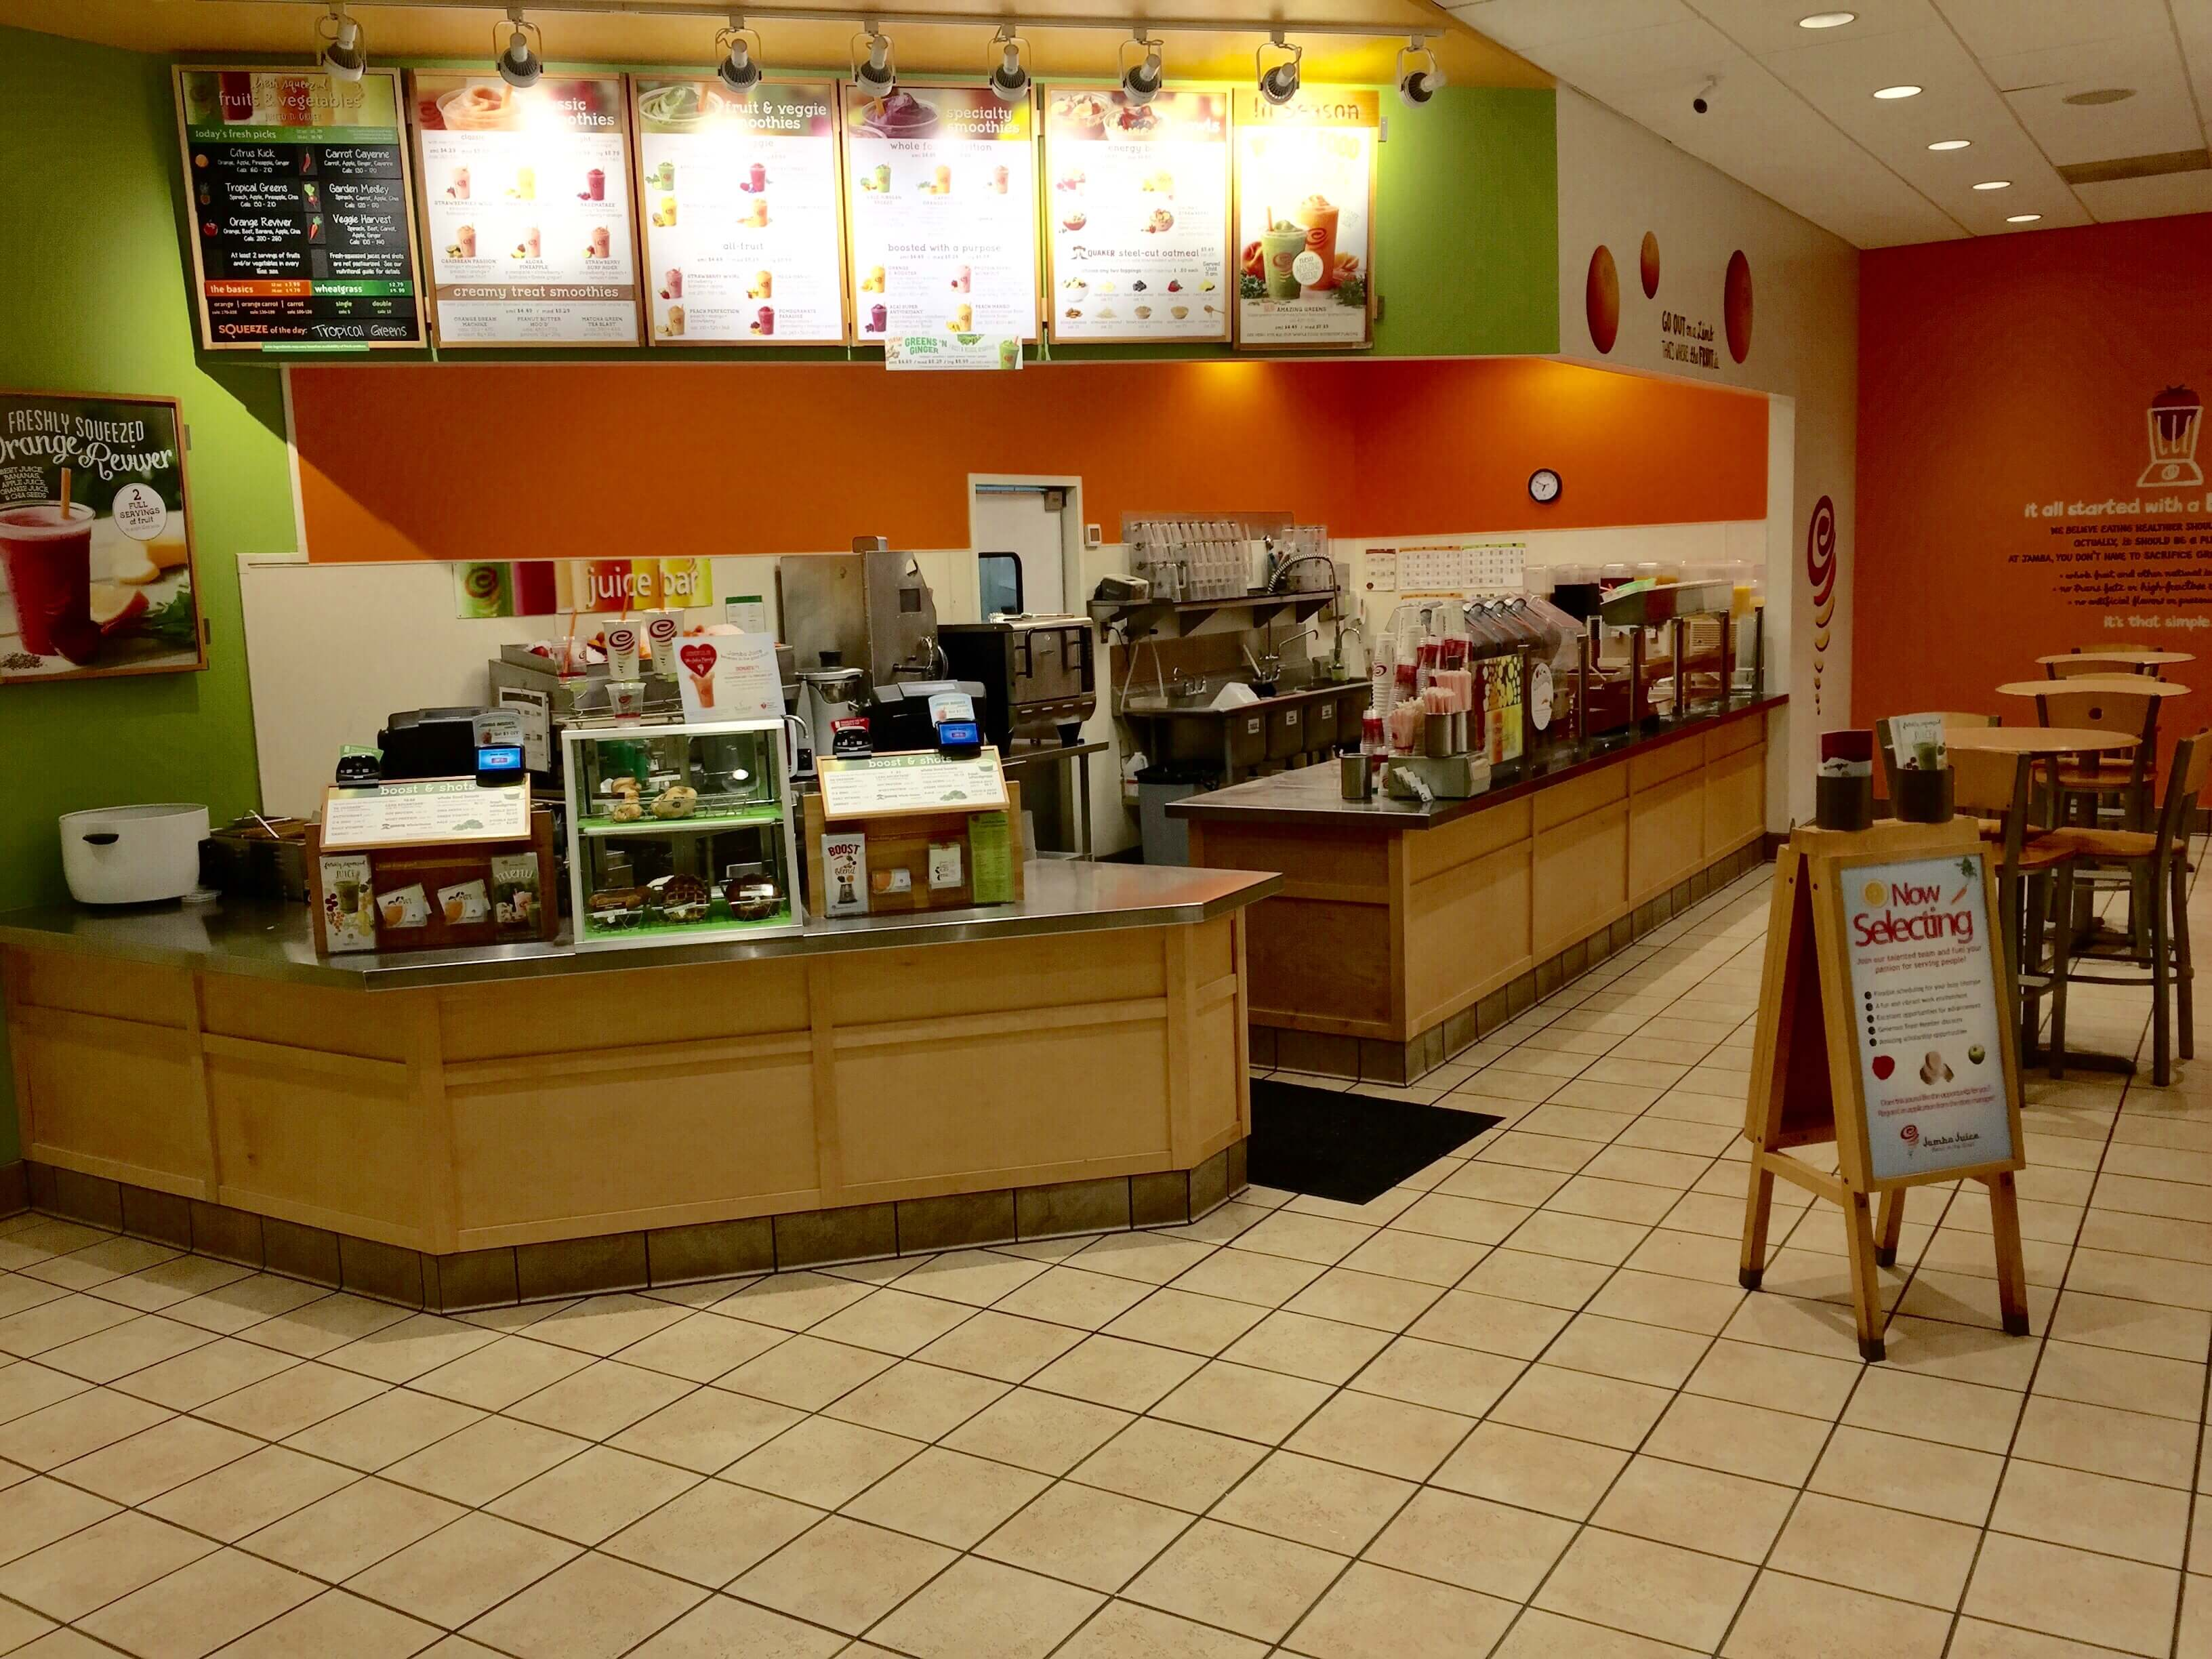 Find Jamba Juice in Corvallis with Address, Phone number from Yahoo US Local. Includes Jamba Juice Reviews, maps & directions to Jamba Juice in Corvallis and more from Yahoo US Local.